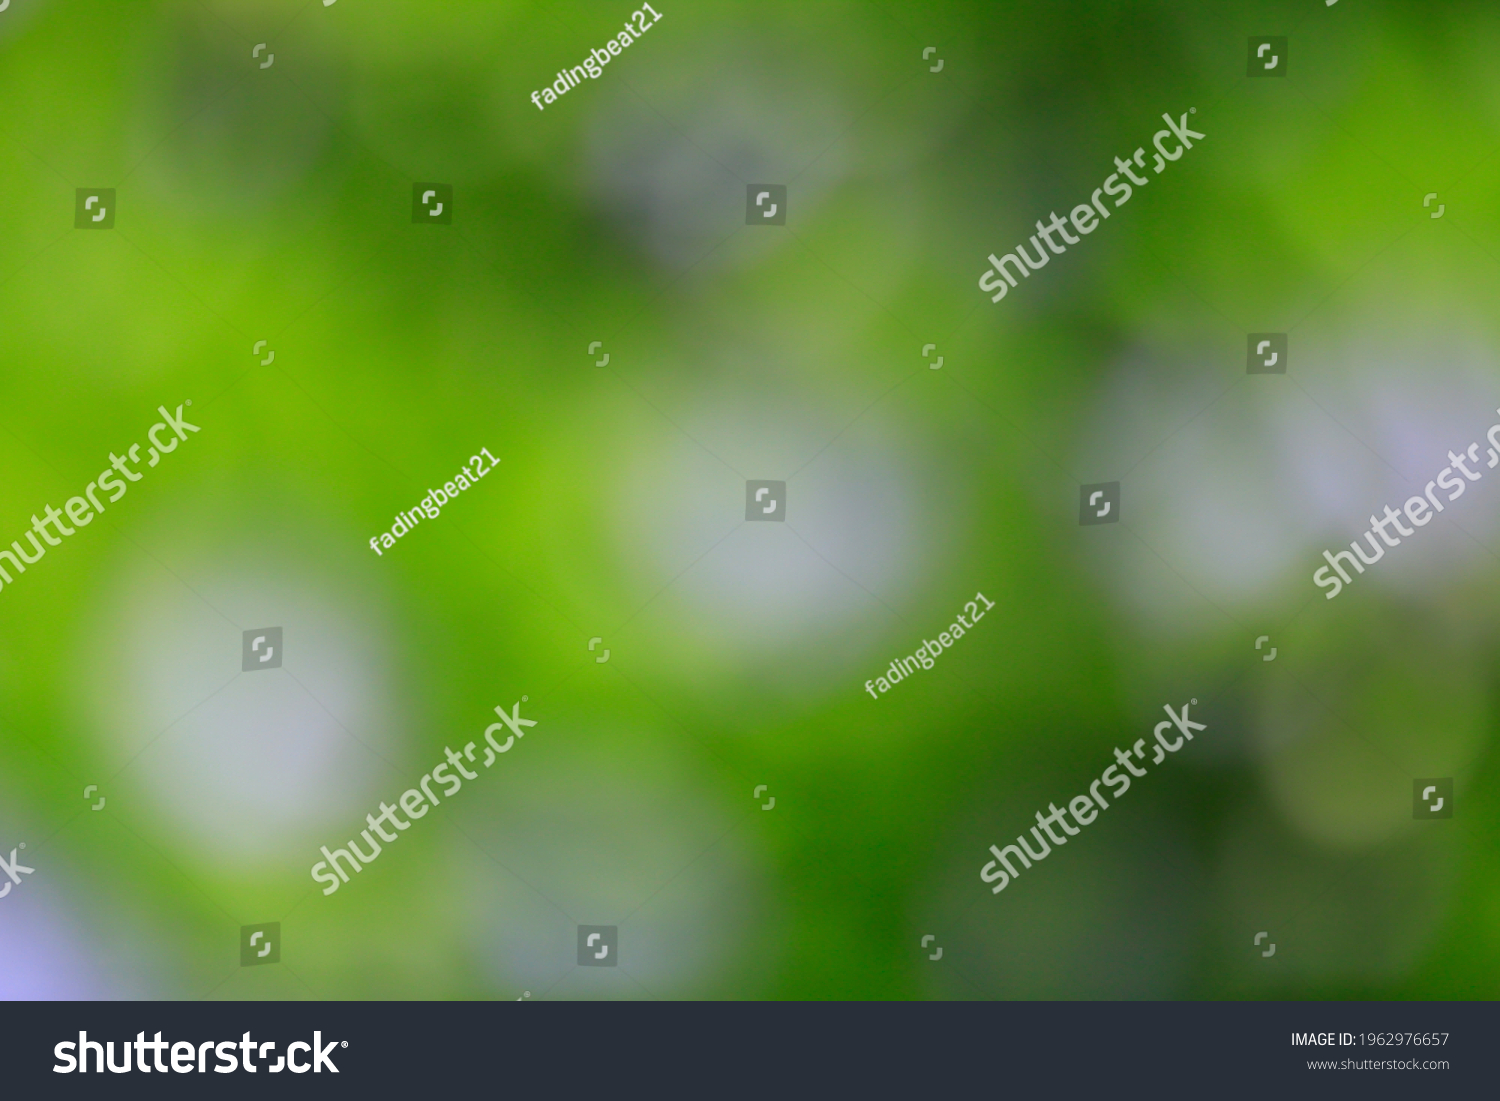 Light blue green background, colorful shapes. Suitable for wallpaper.